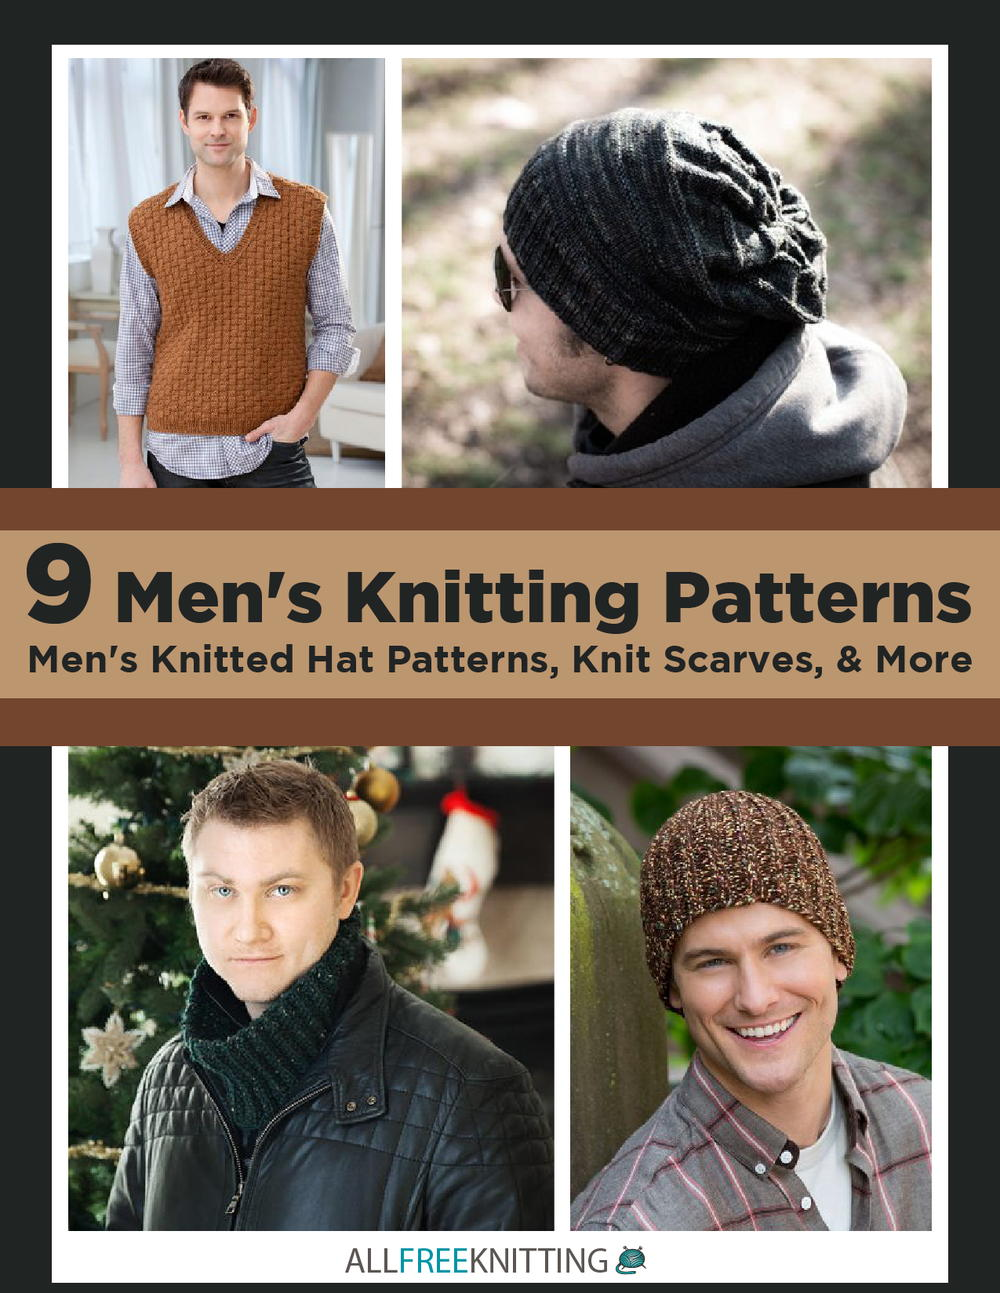 9 mens knitting patterns mens knitted hat patterns knit 9 mens knitting patterns mens knitted hat patterns knit scarves more free ebook allfreeknitting bankloansurffo Image collections